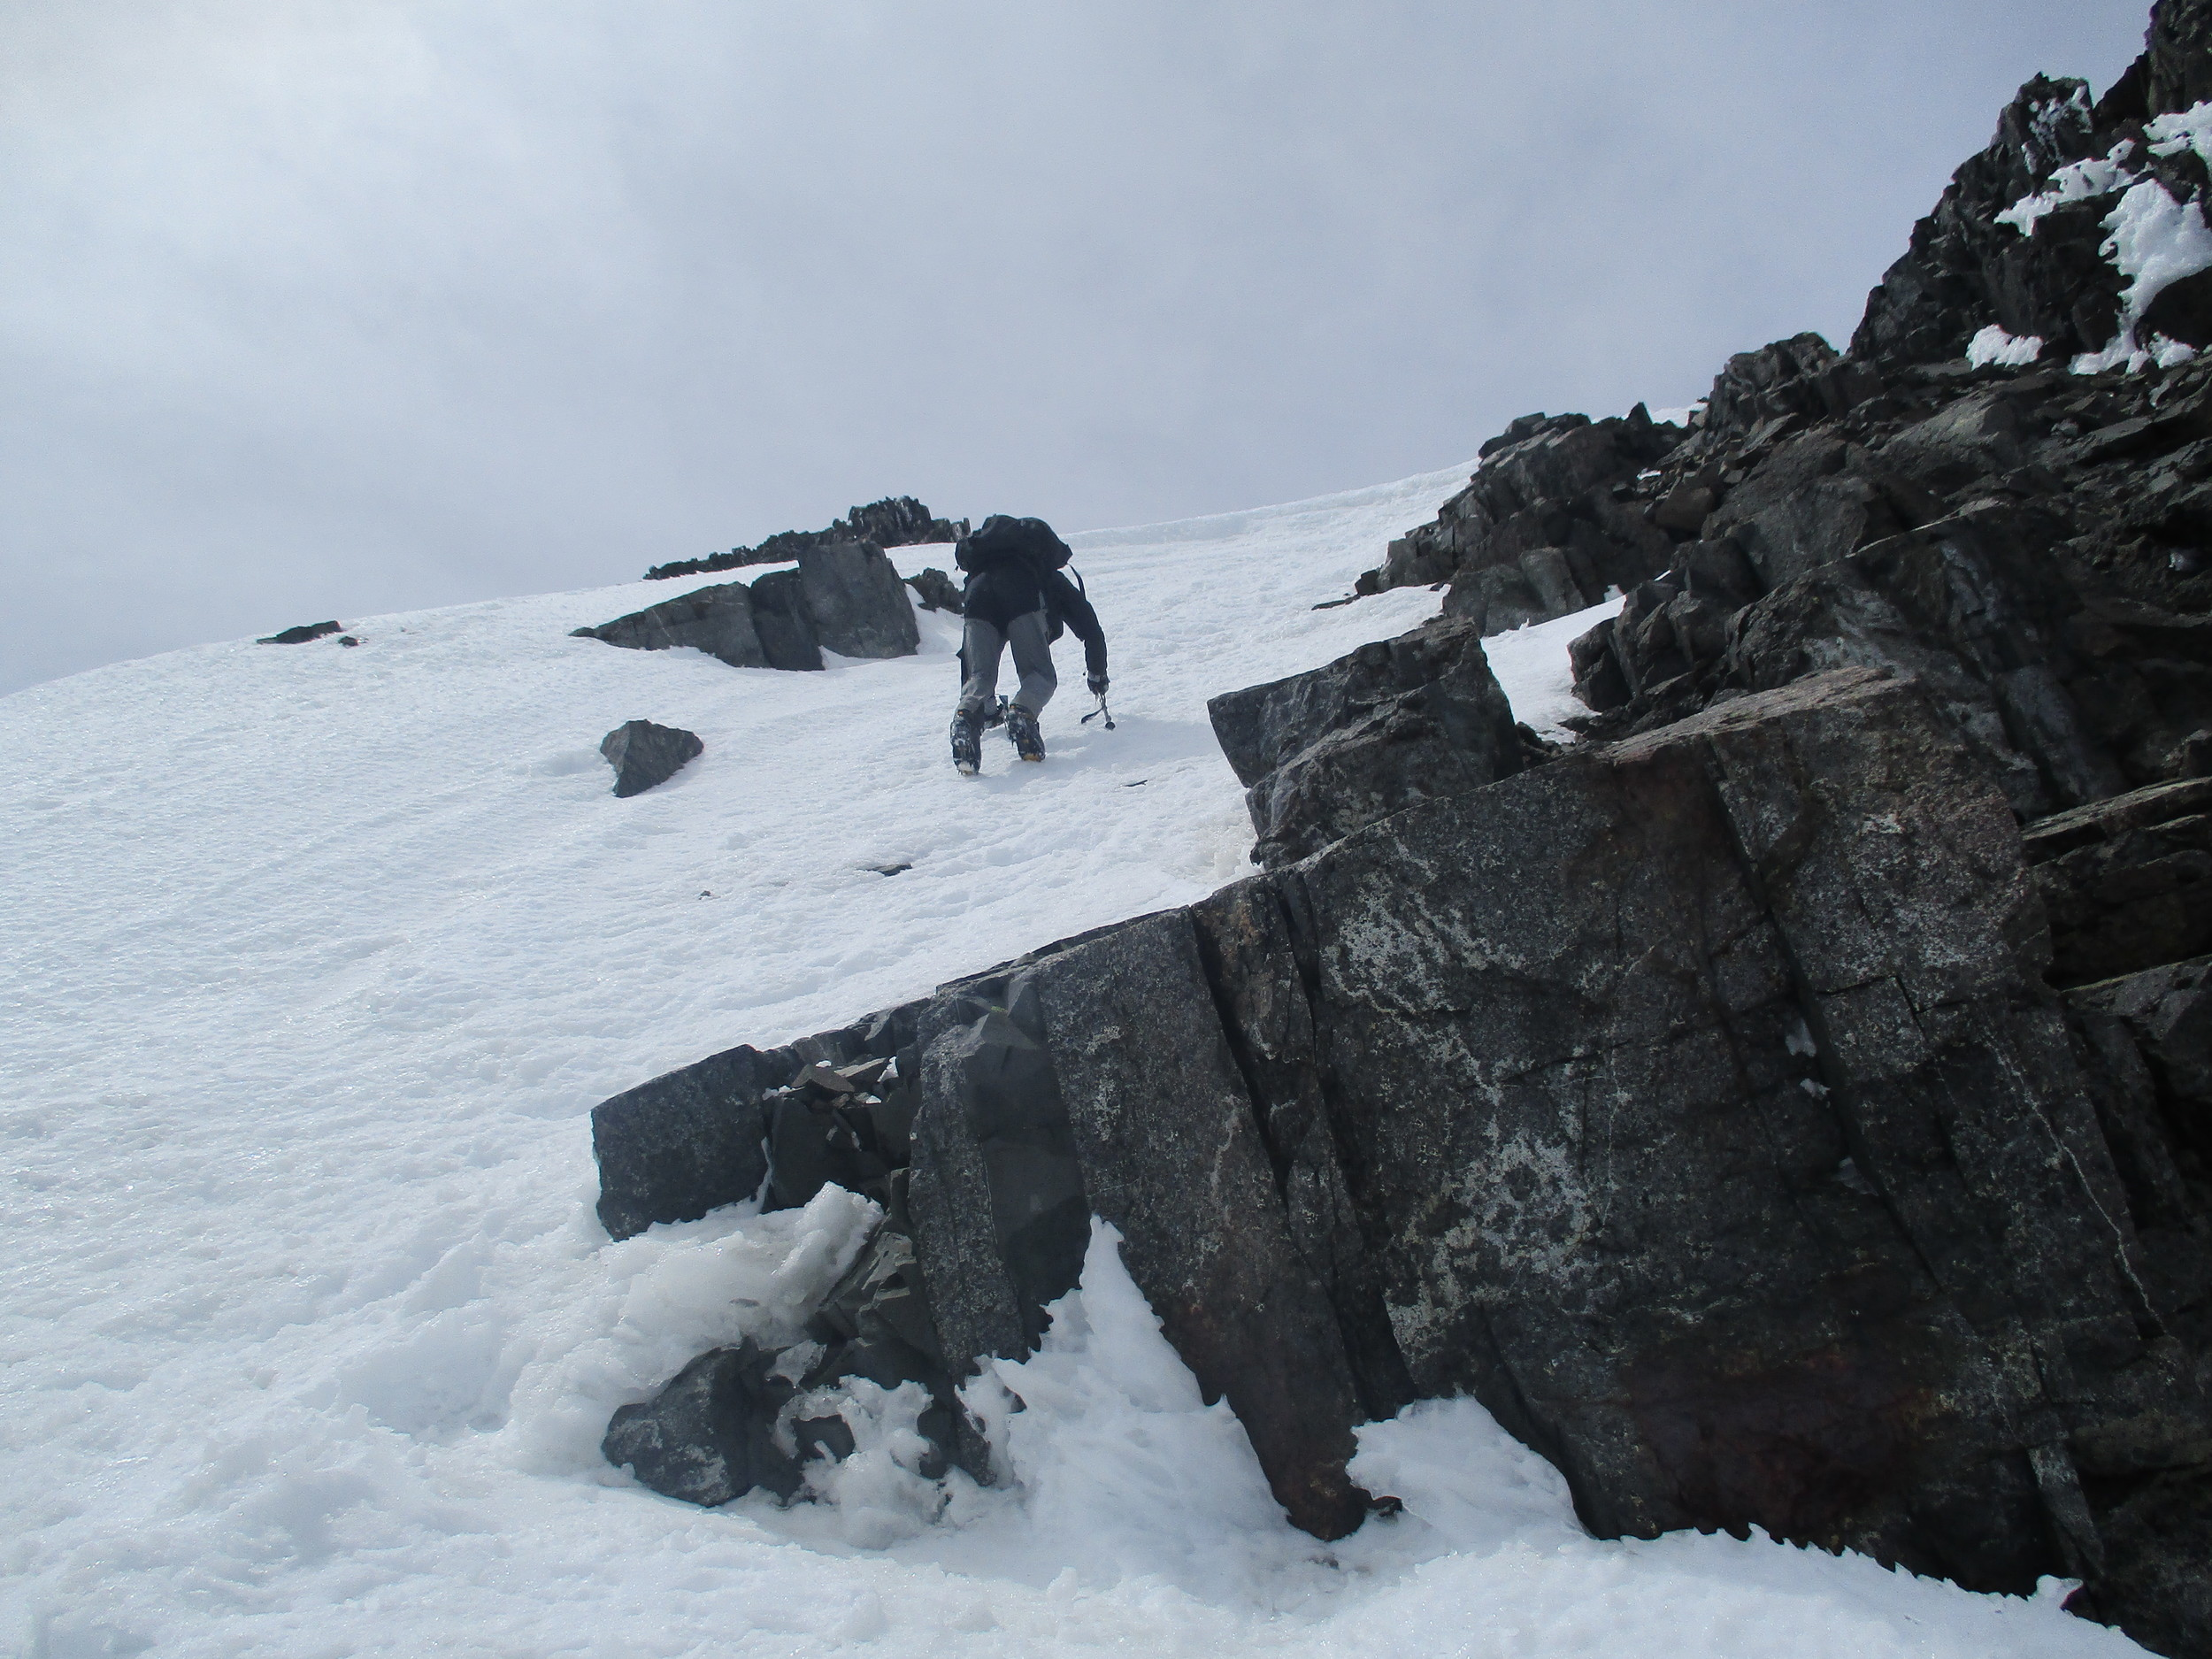 Approaching the summit , Tappy